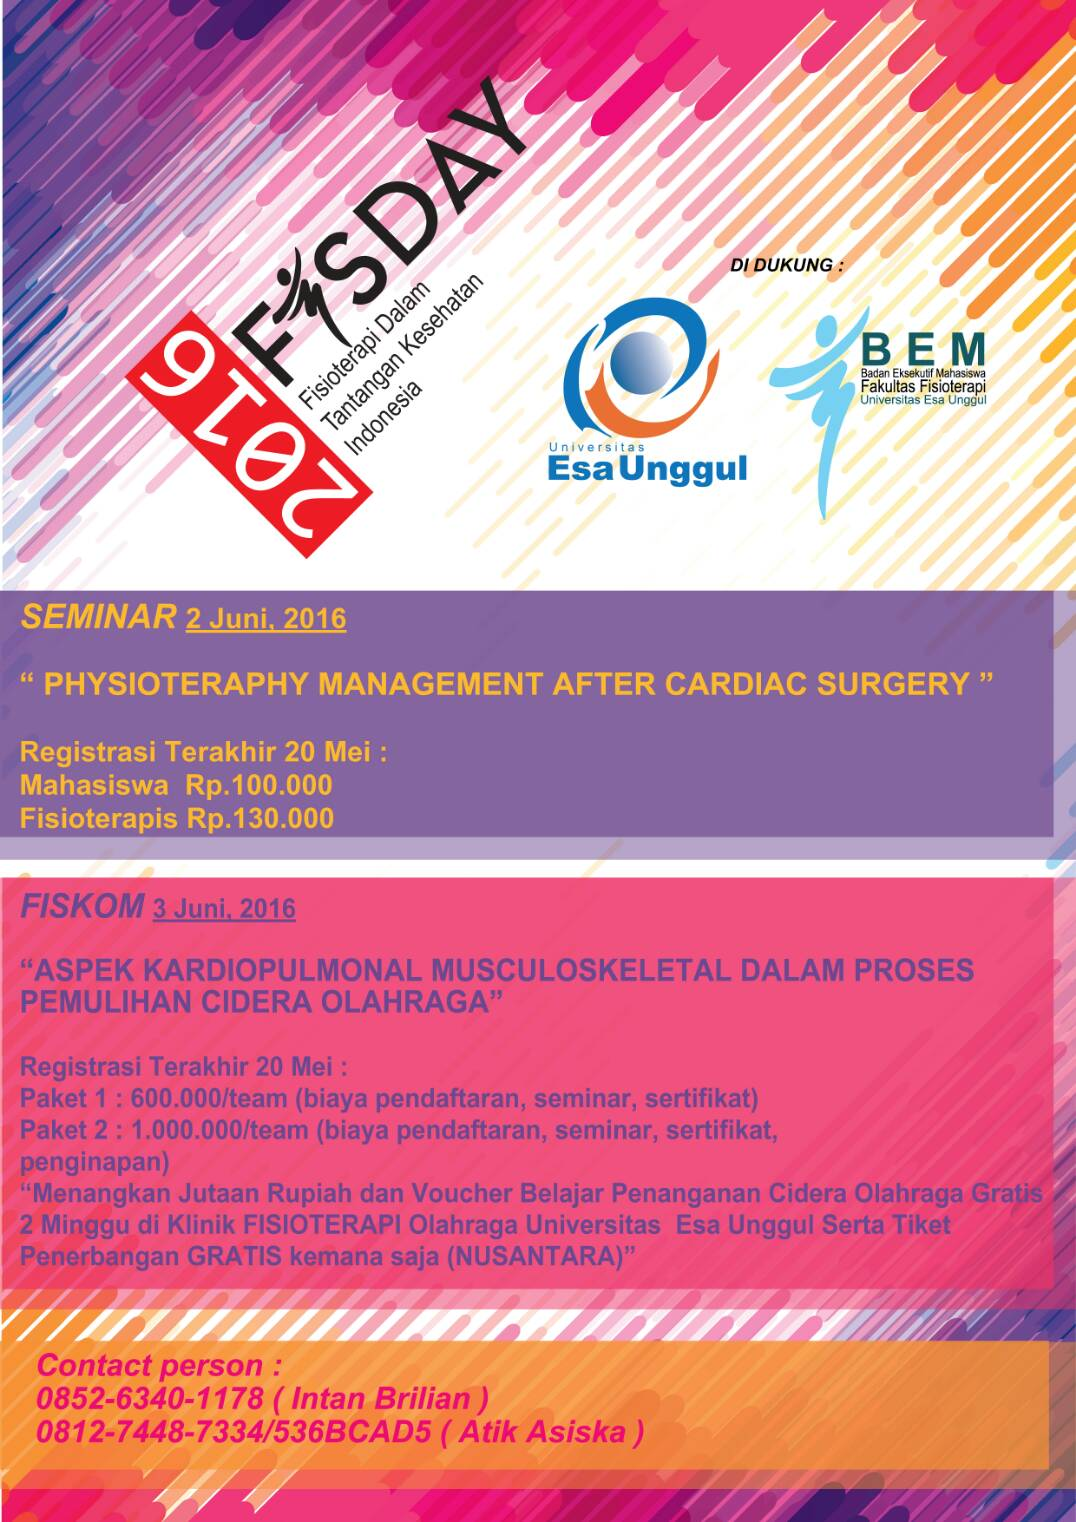 Physioteraphy Day 2016 Universitas Esa Unggul